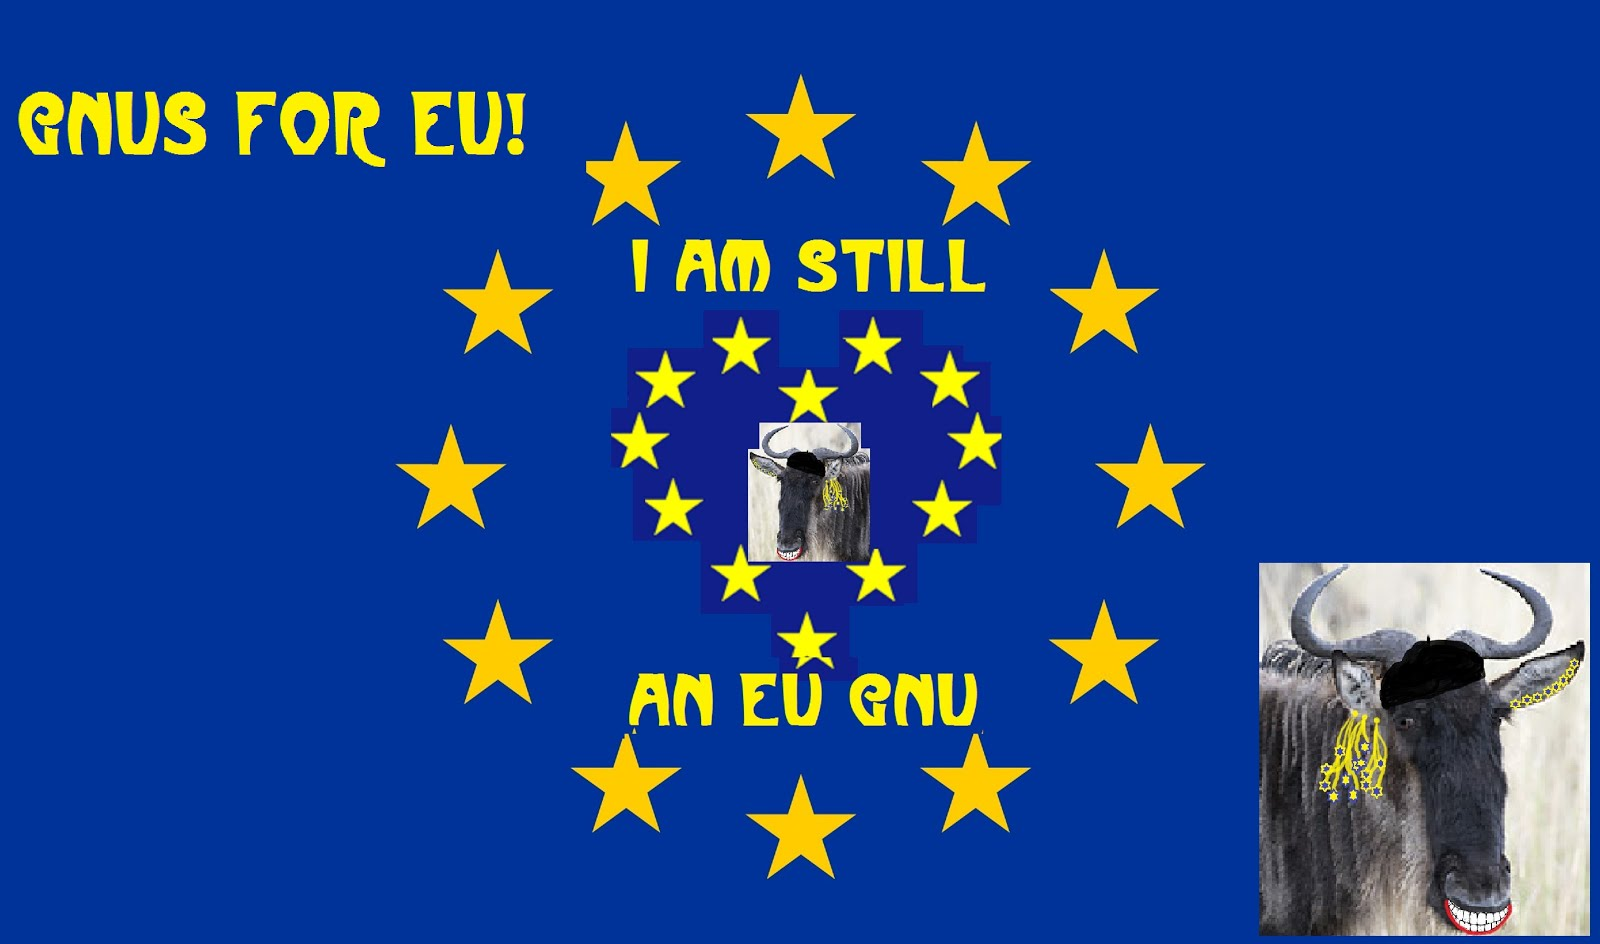 Gnus for the EU 2016